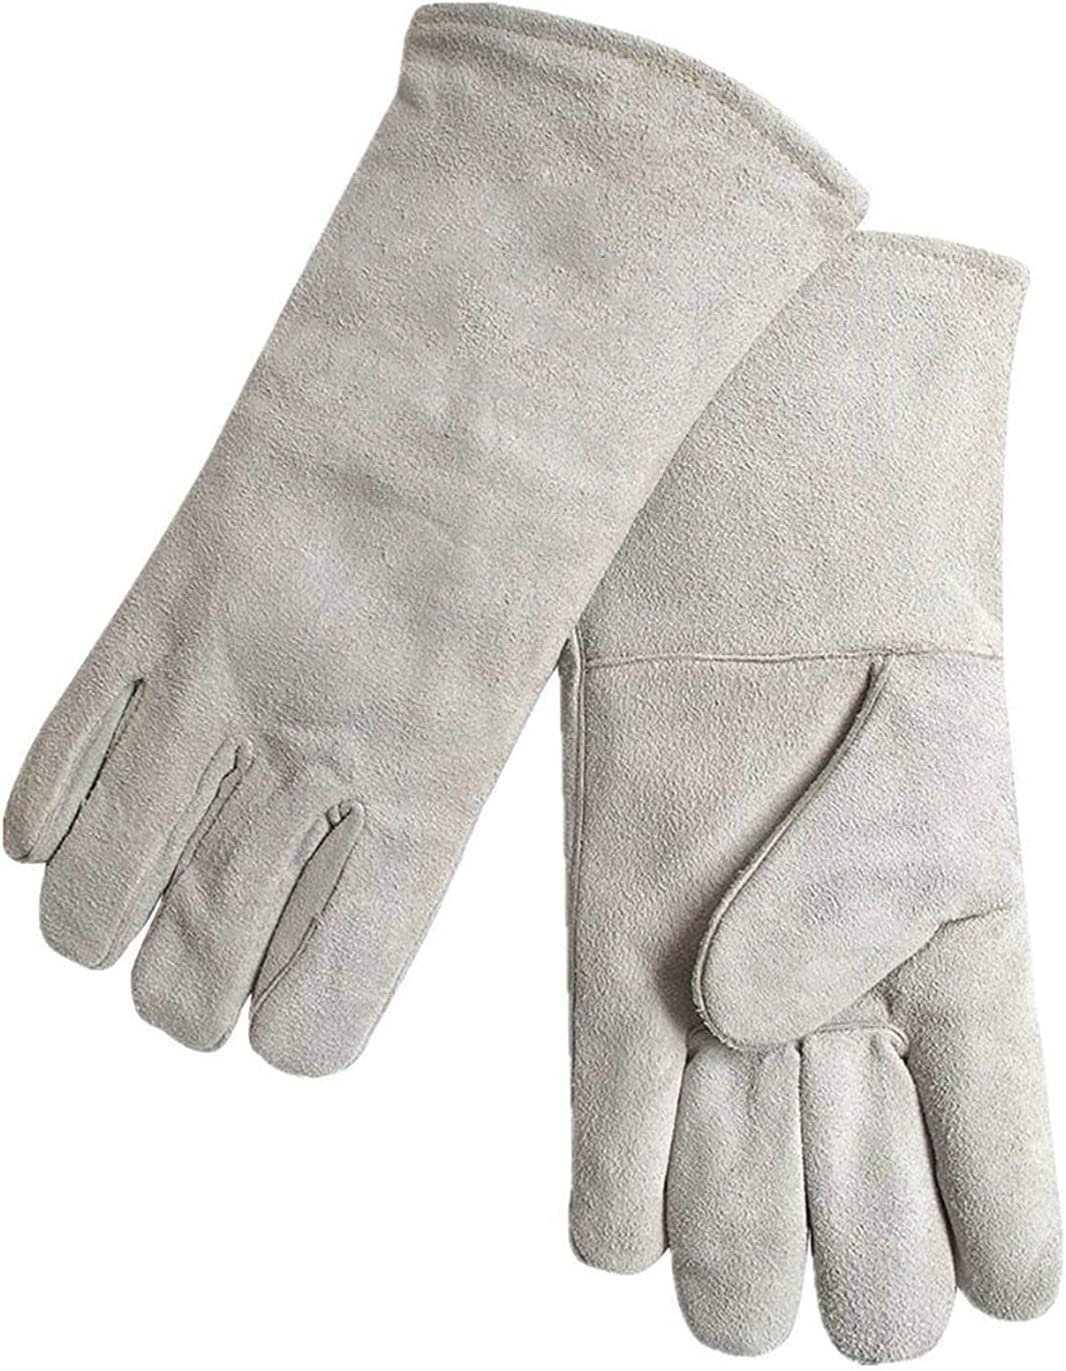 Bargain sale low-pricing electric welding machine MIG Gloves 14